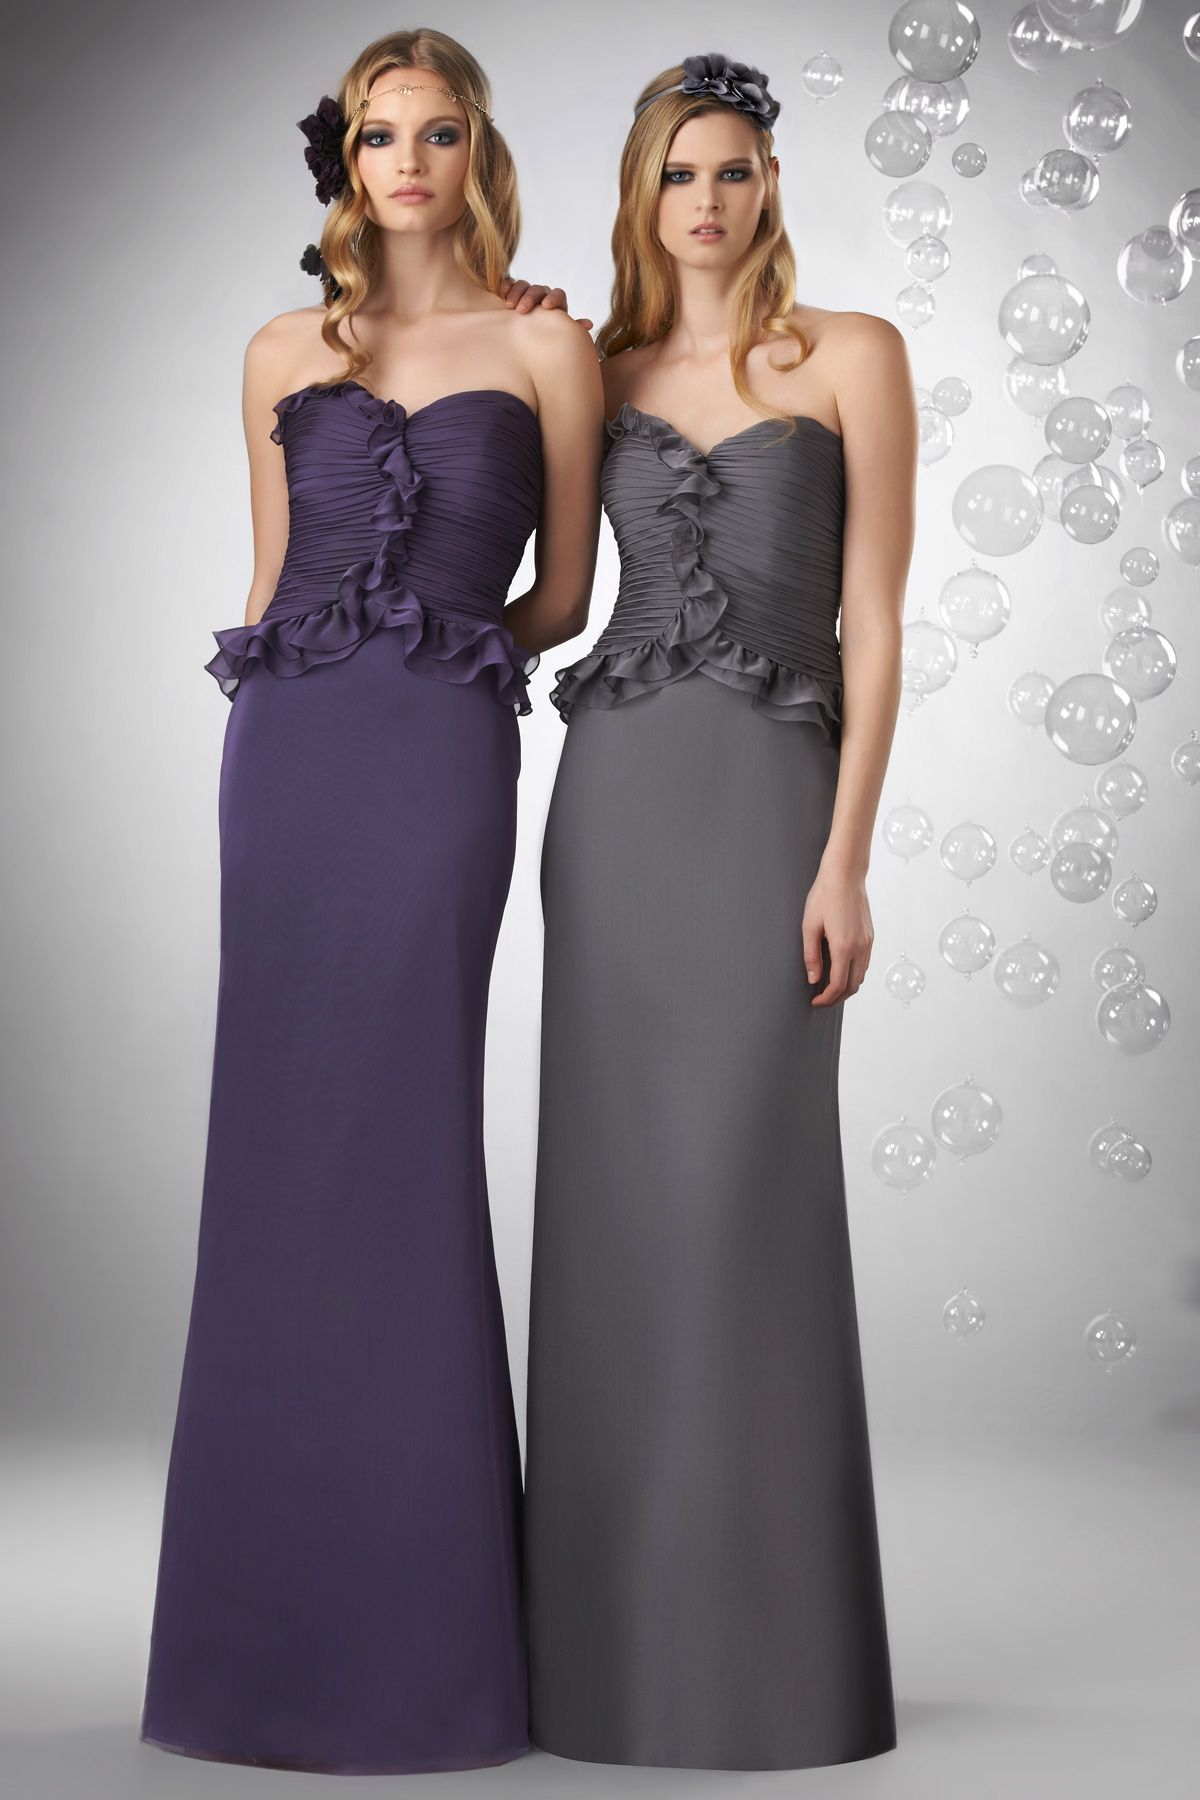 Peplum Bridesmaid Dress Gallery - Braidsmaid Dress, Cocktail Dress ...